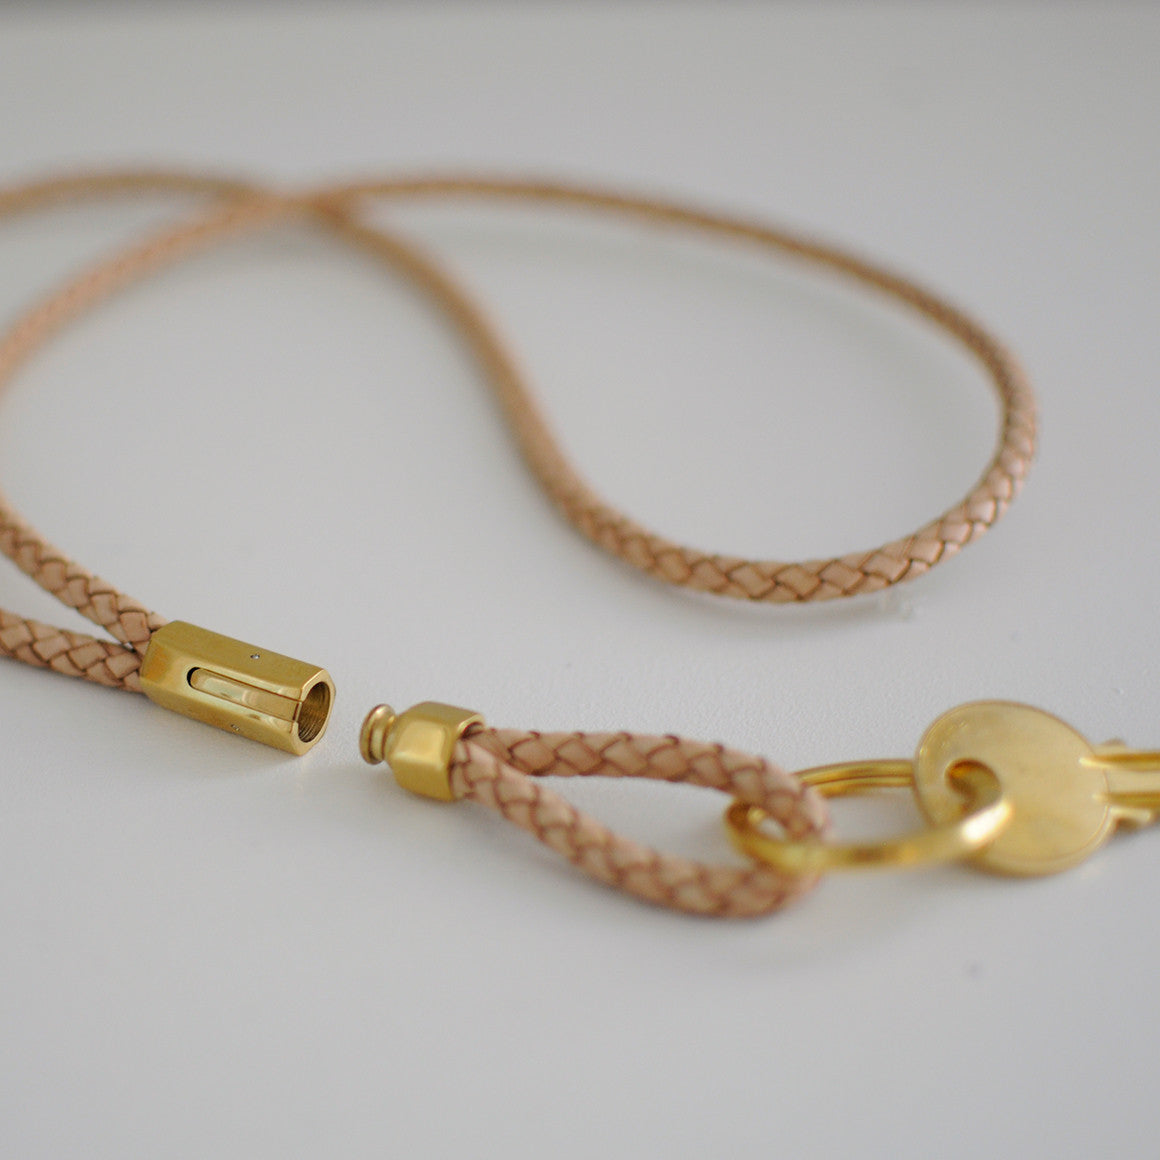 LEATHER KEYCHAIN NECKLACE LANYARD